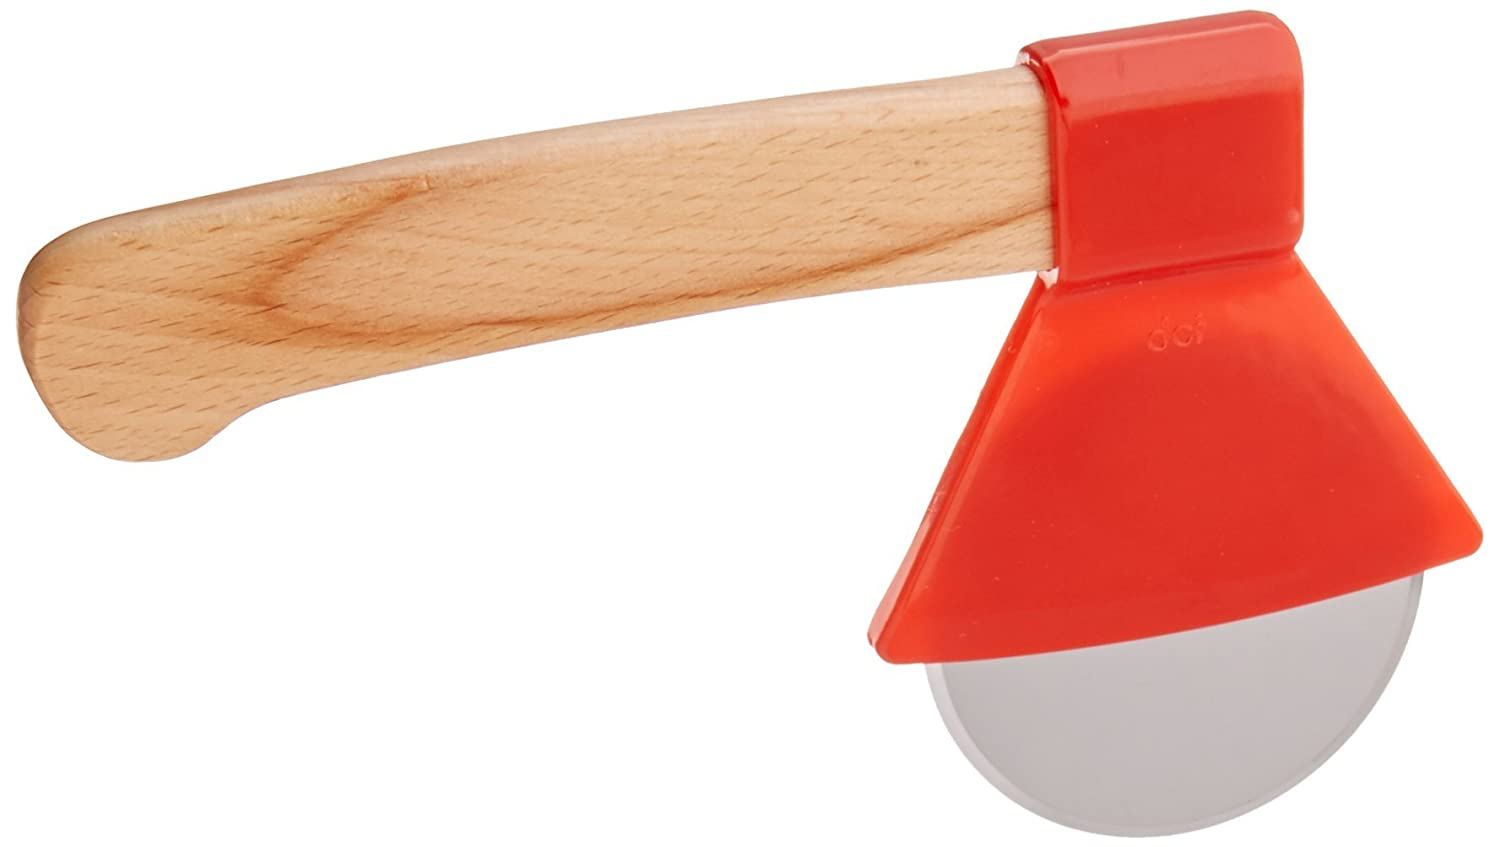 DCI Ax Pizza Cutter, Stainless Steel Cutting Blade, Wood Handle, Red 44908